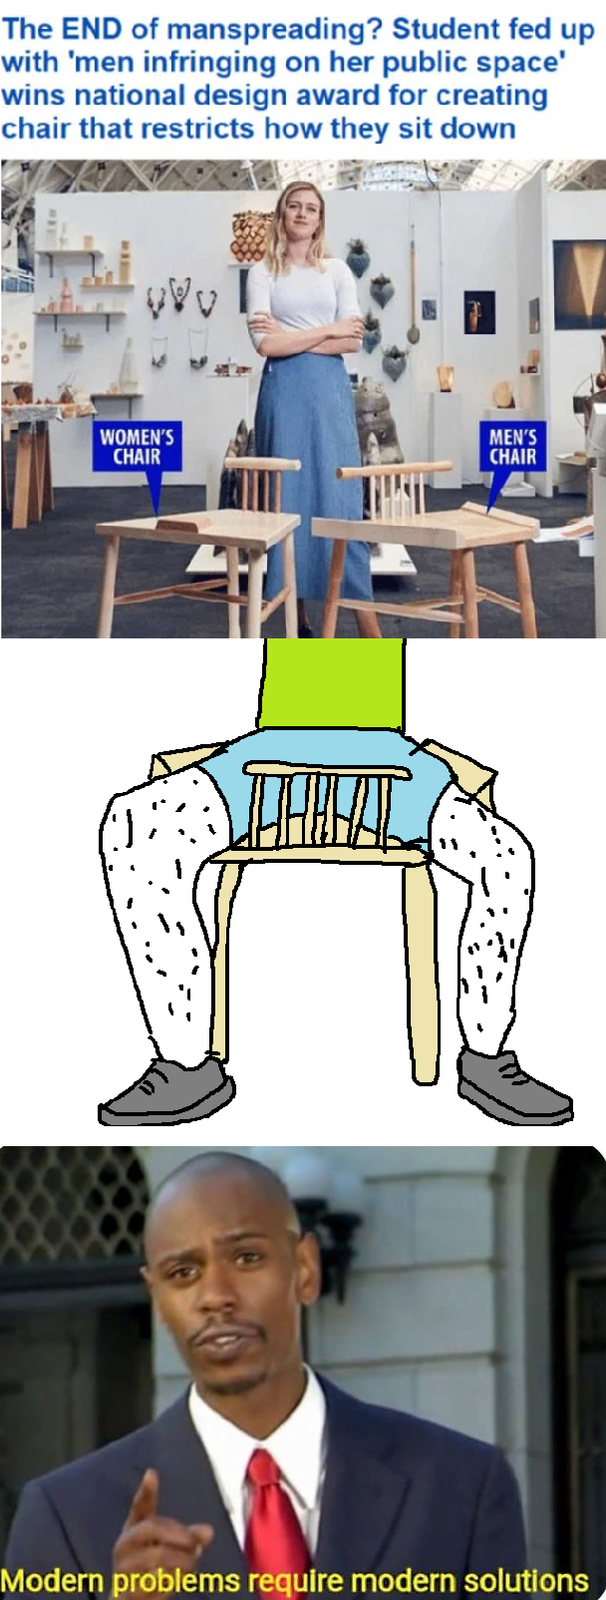 Cartoon - The END of manspreading? Student fed up with 'men infringing on her public space' wins national design award for creating chair that restricts how they sit down MEN'S CHAIR WOMEN'S CHAIR Modern problems require modern solutions WI